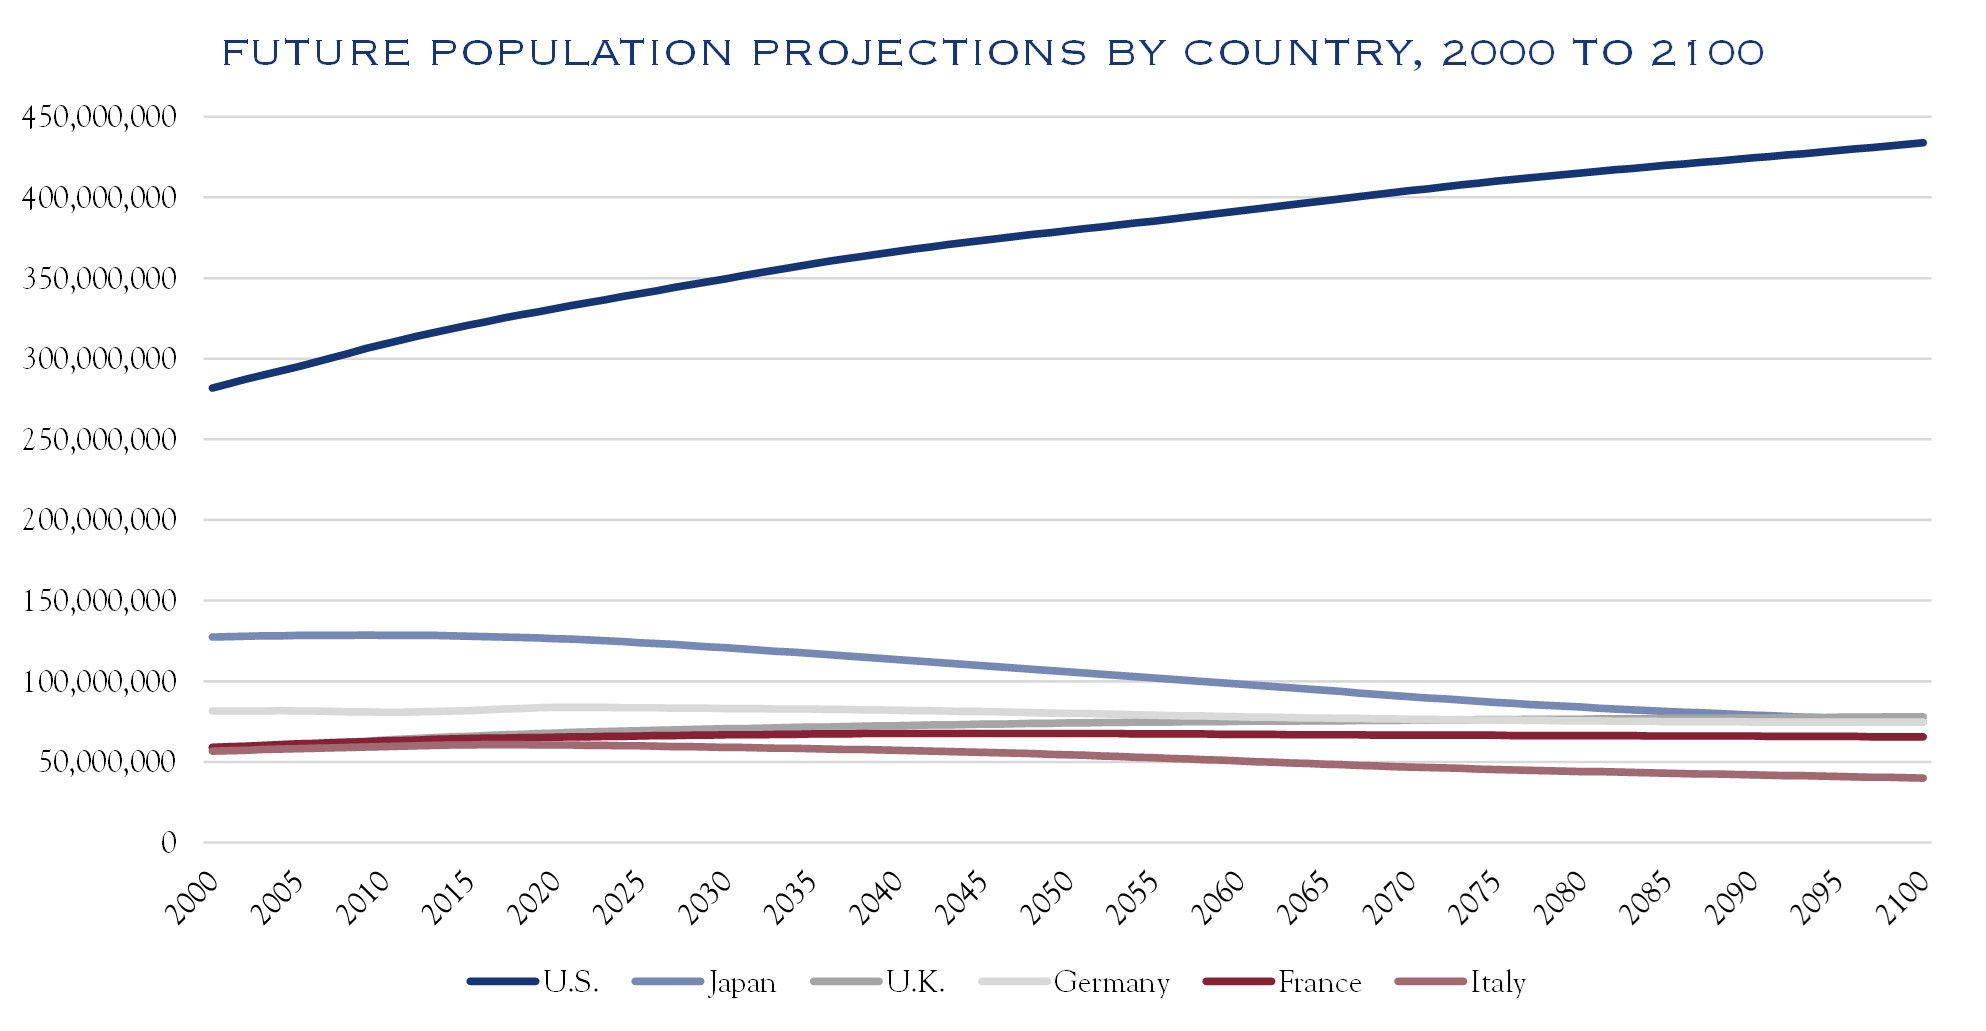 Silvercrest Future Population Projections by Country, 2000 to 2100